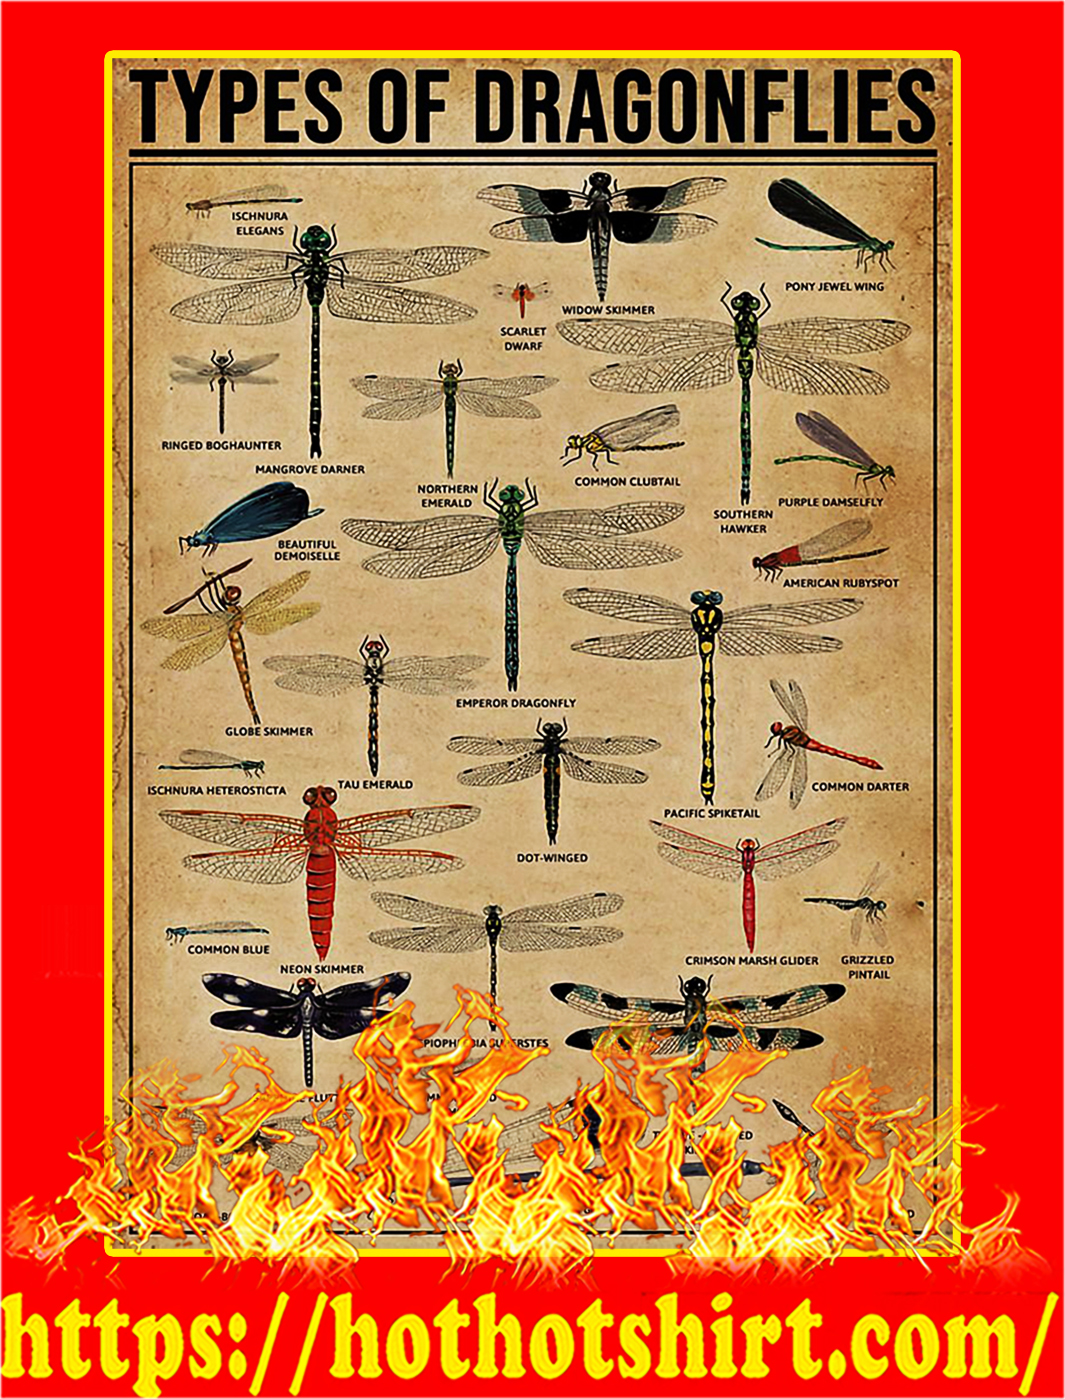 Types Of Dragonflies Poster - A3